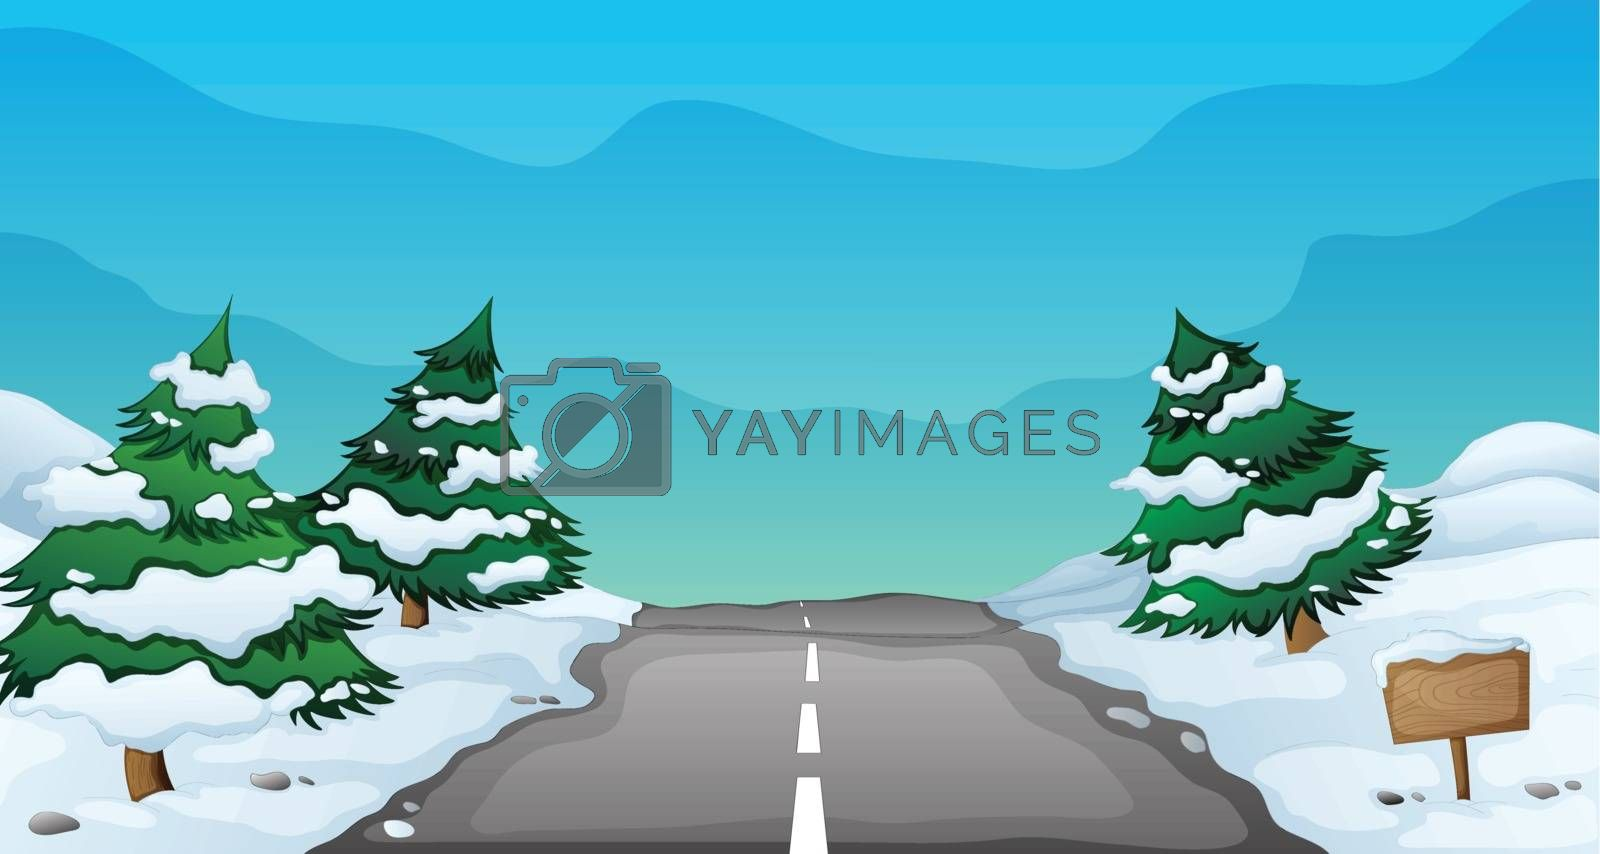 illustration of a snowy landscape and a road